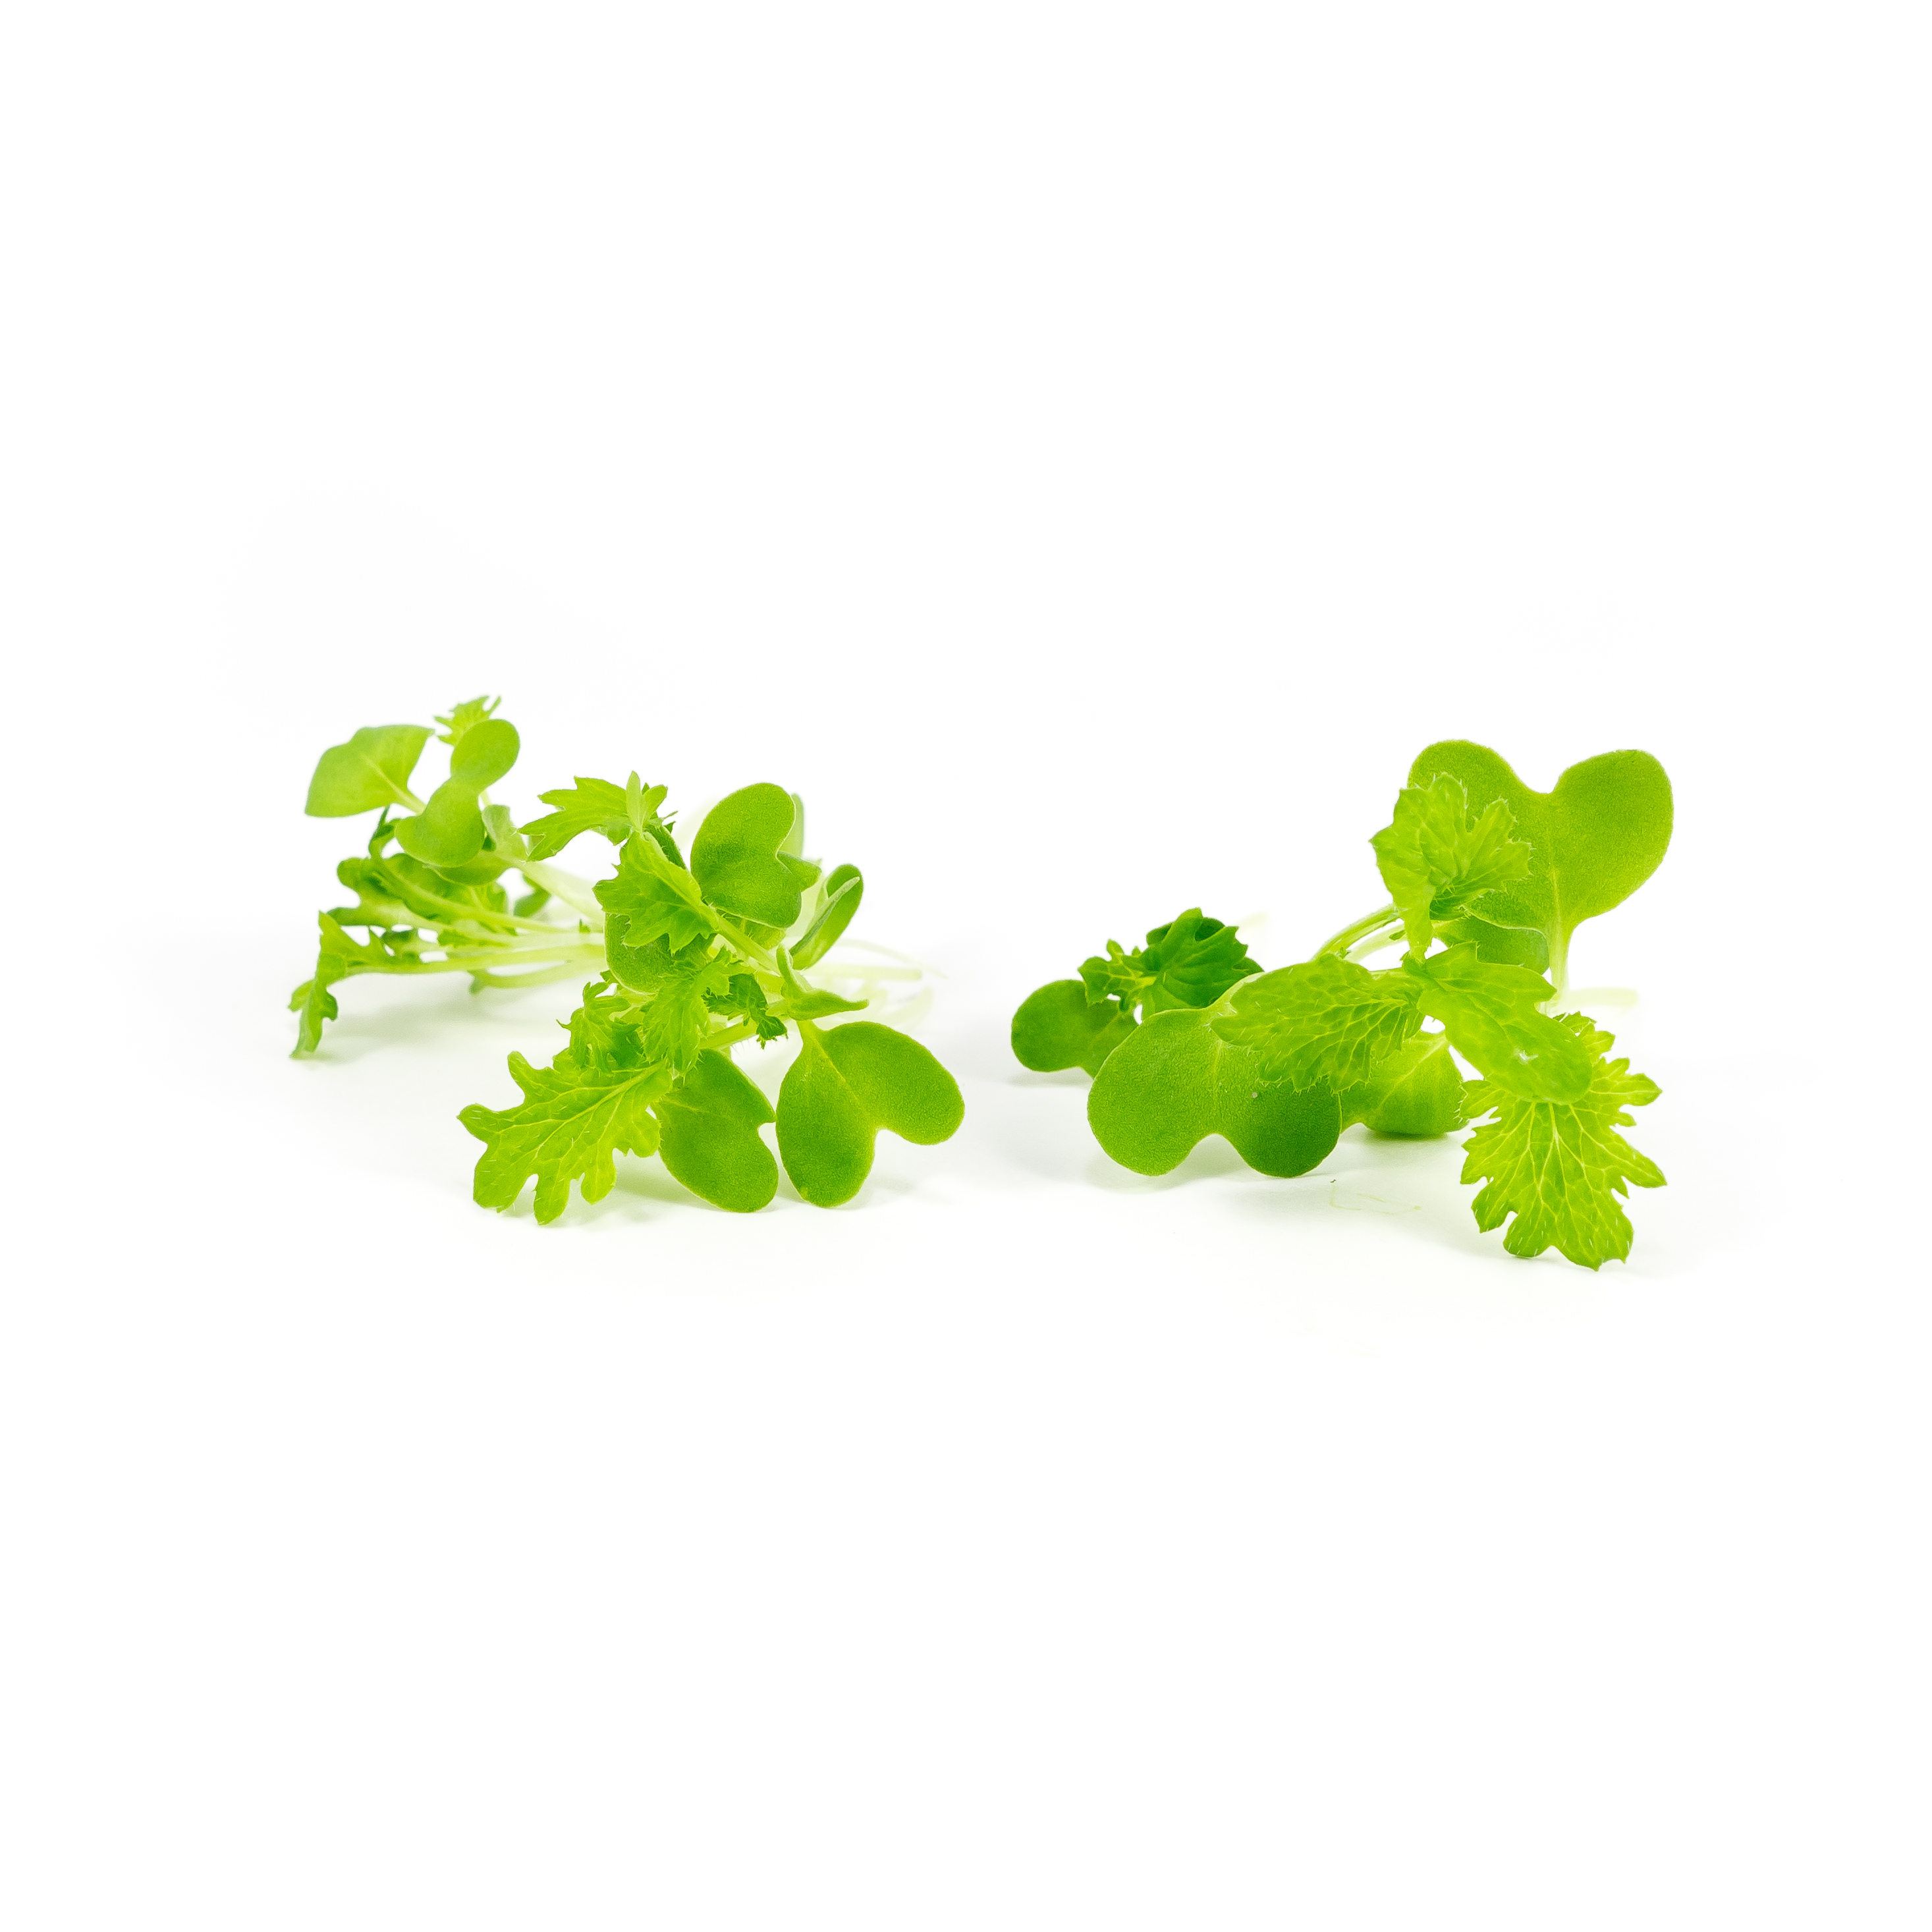 Spicy mustard and horseradish flavors in bright green micro leaves